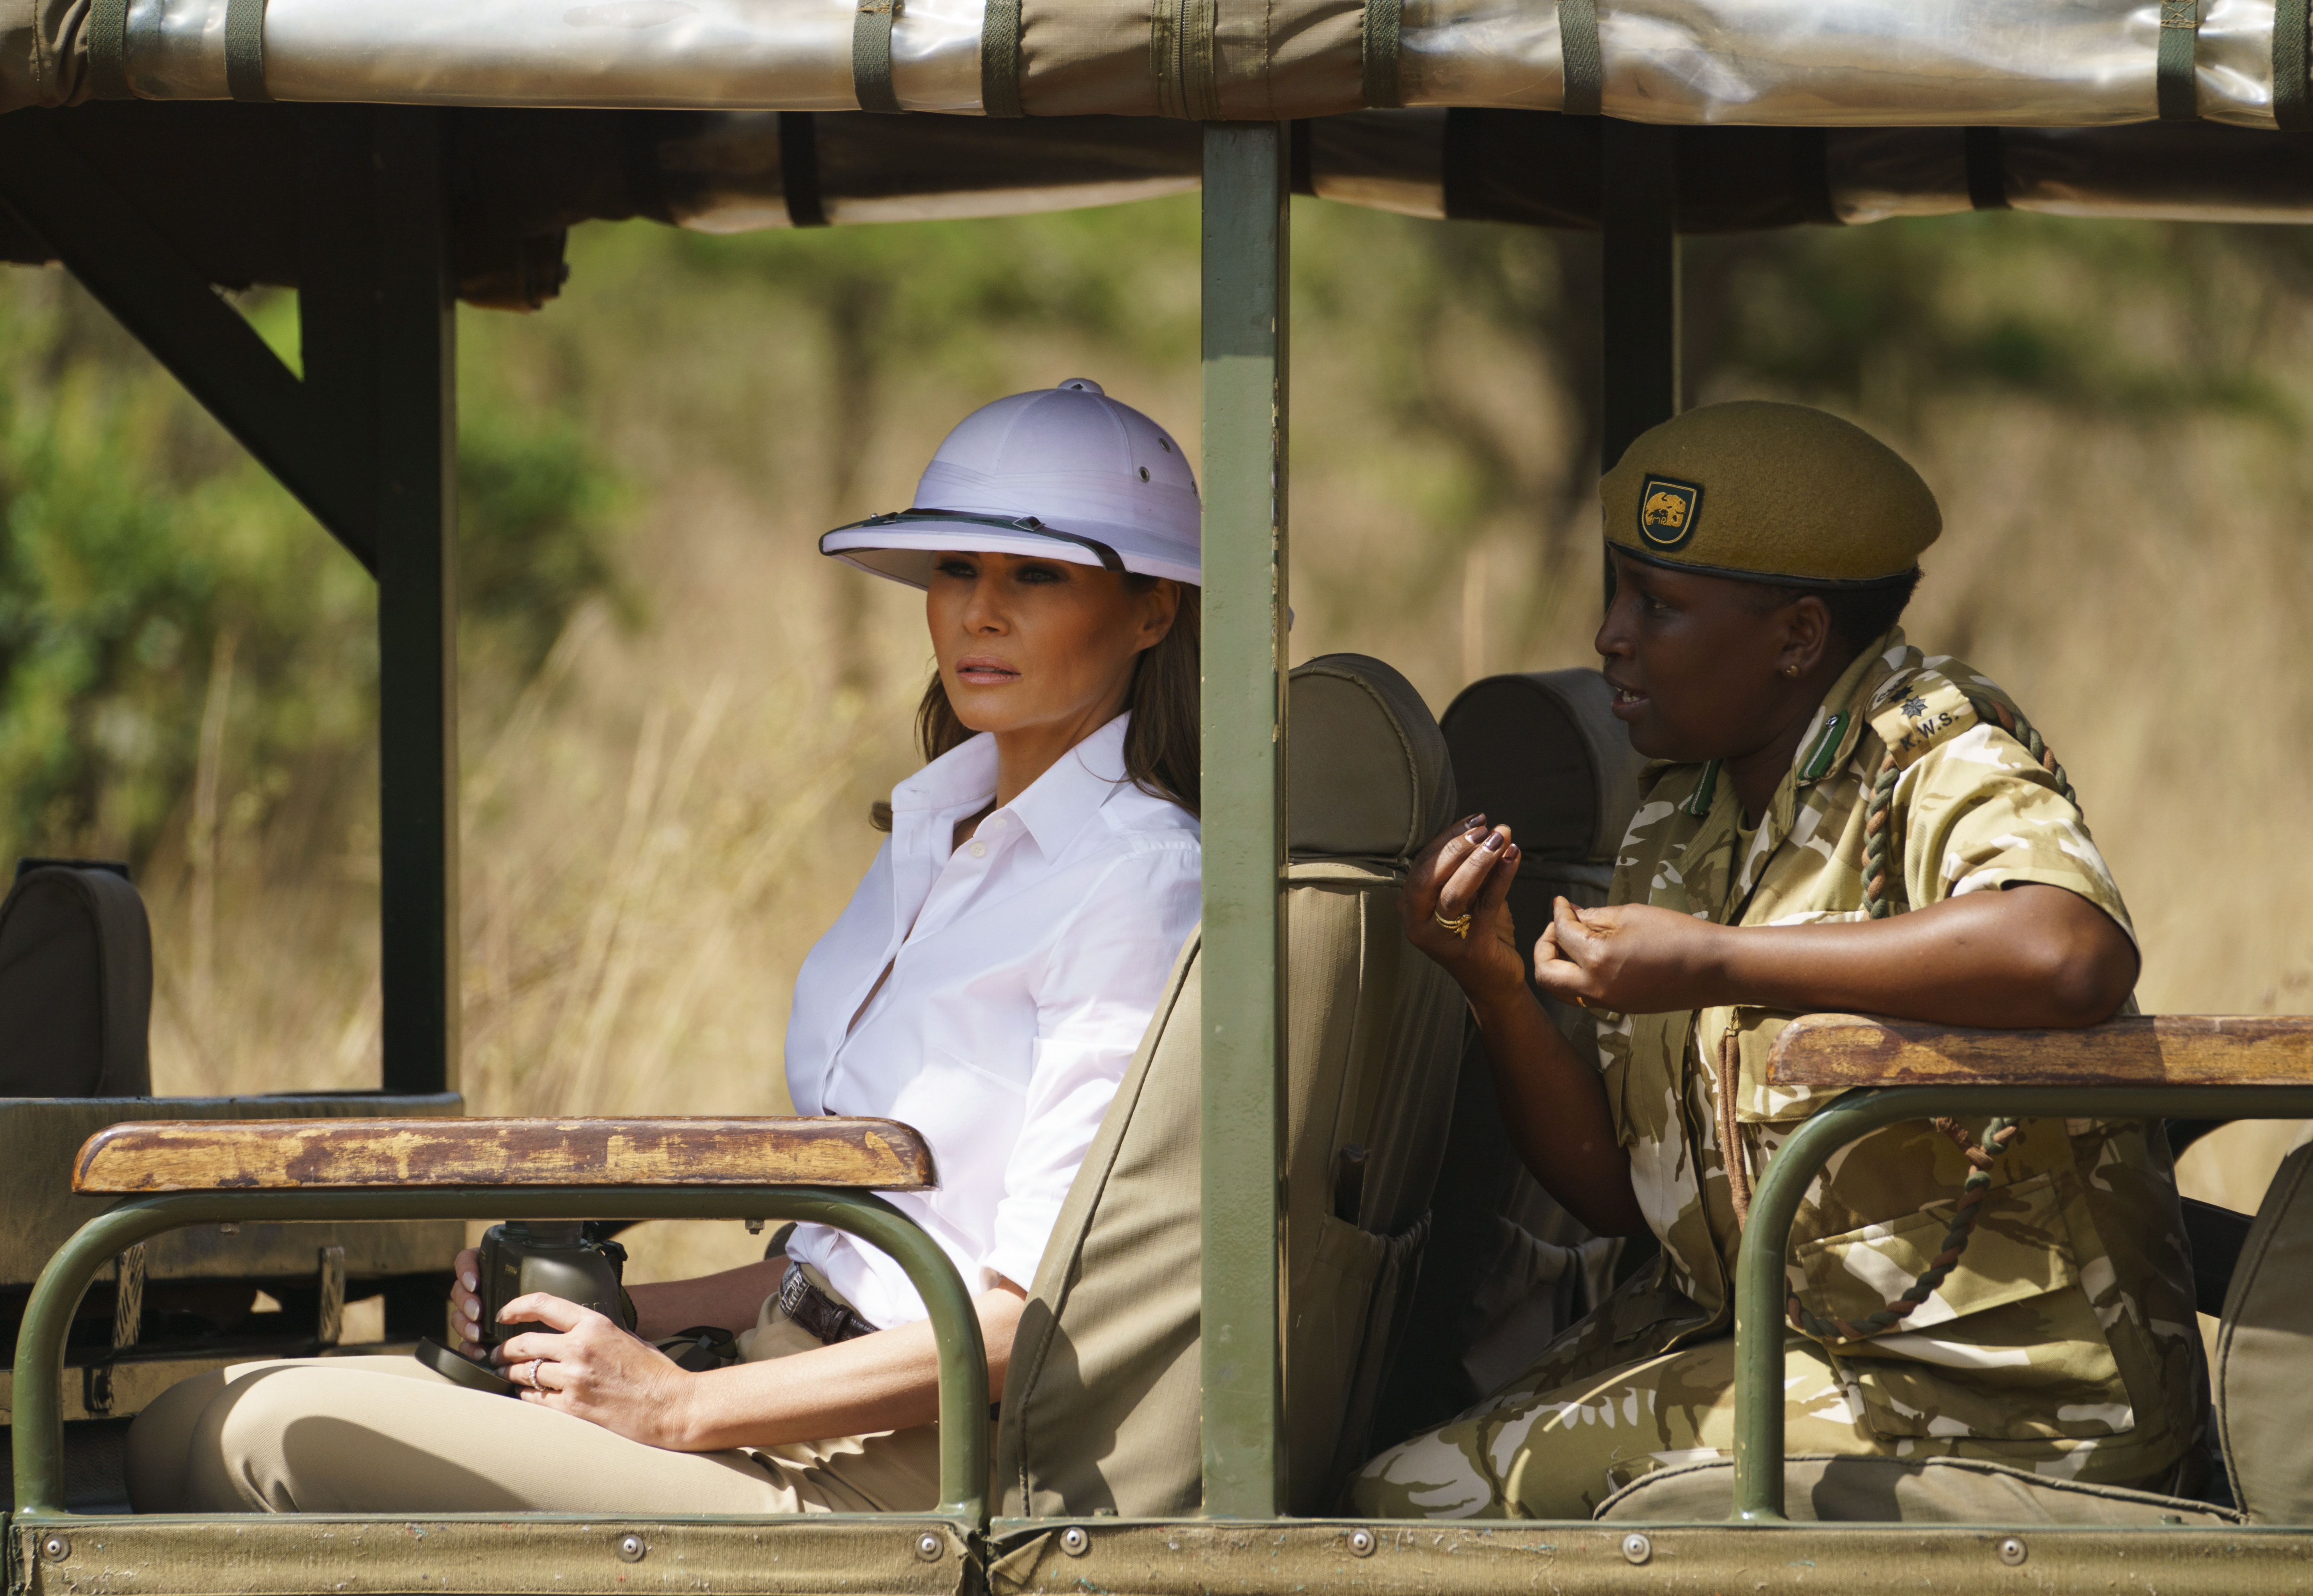 Melania Trump's pith helmet is not just a hat